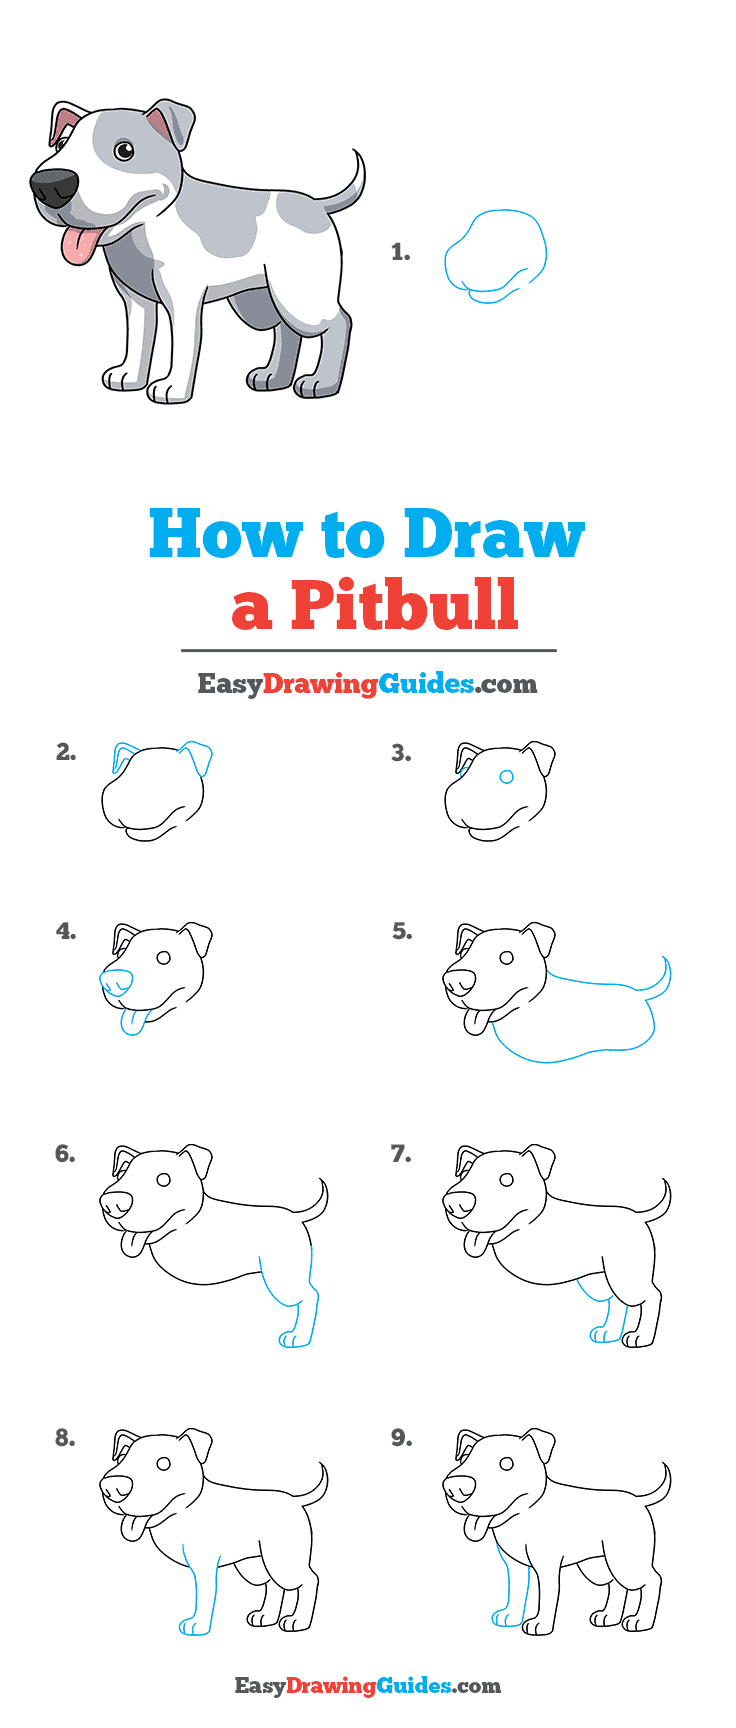 How to Draw a Pitbull Step by Step Tutorial Image